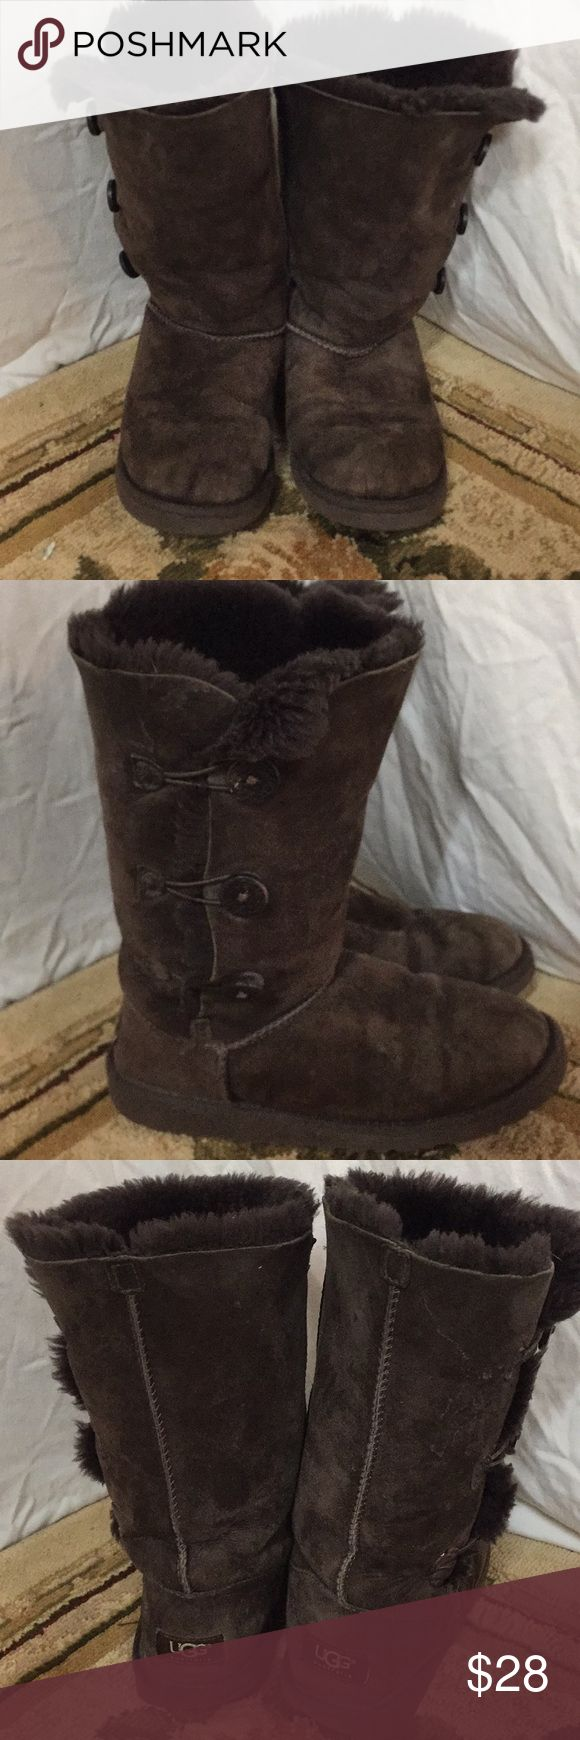 UGG BAILEY BOOTS SZ 36/6 Great auth boots show wear priced accordingly Shoes Winter & Rain Boots